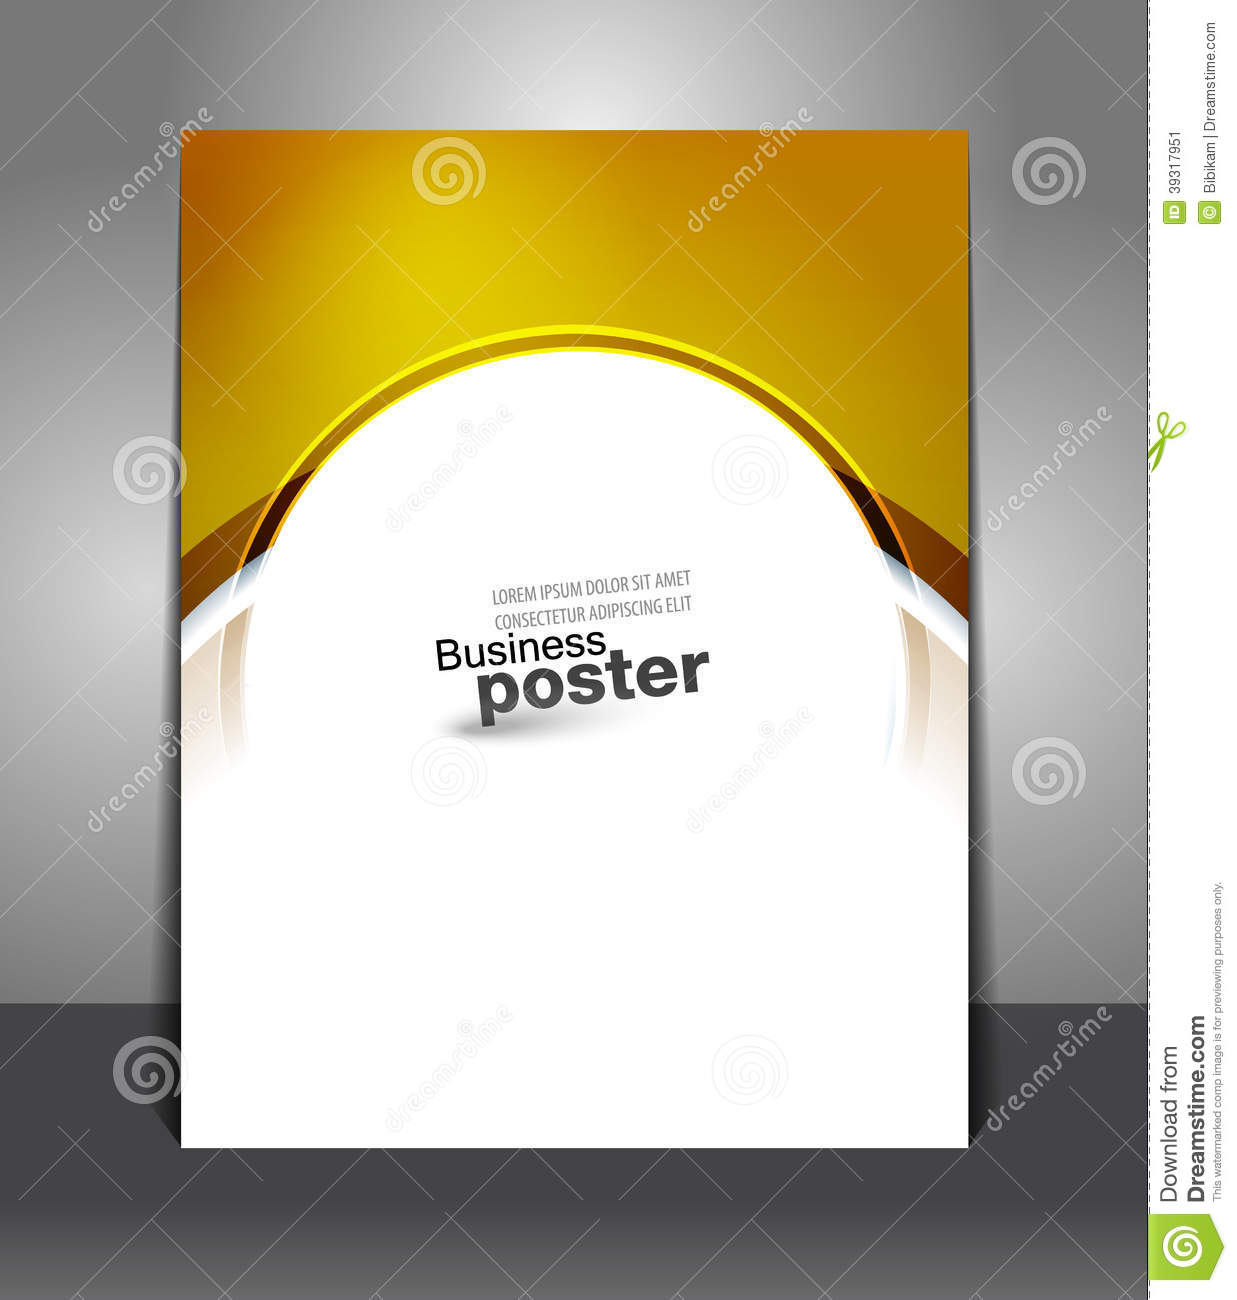 stylish gold presentation of business poster stock vector - image, Presentation templates